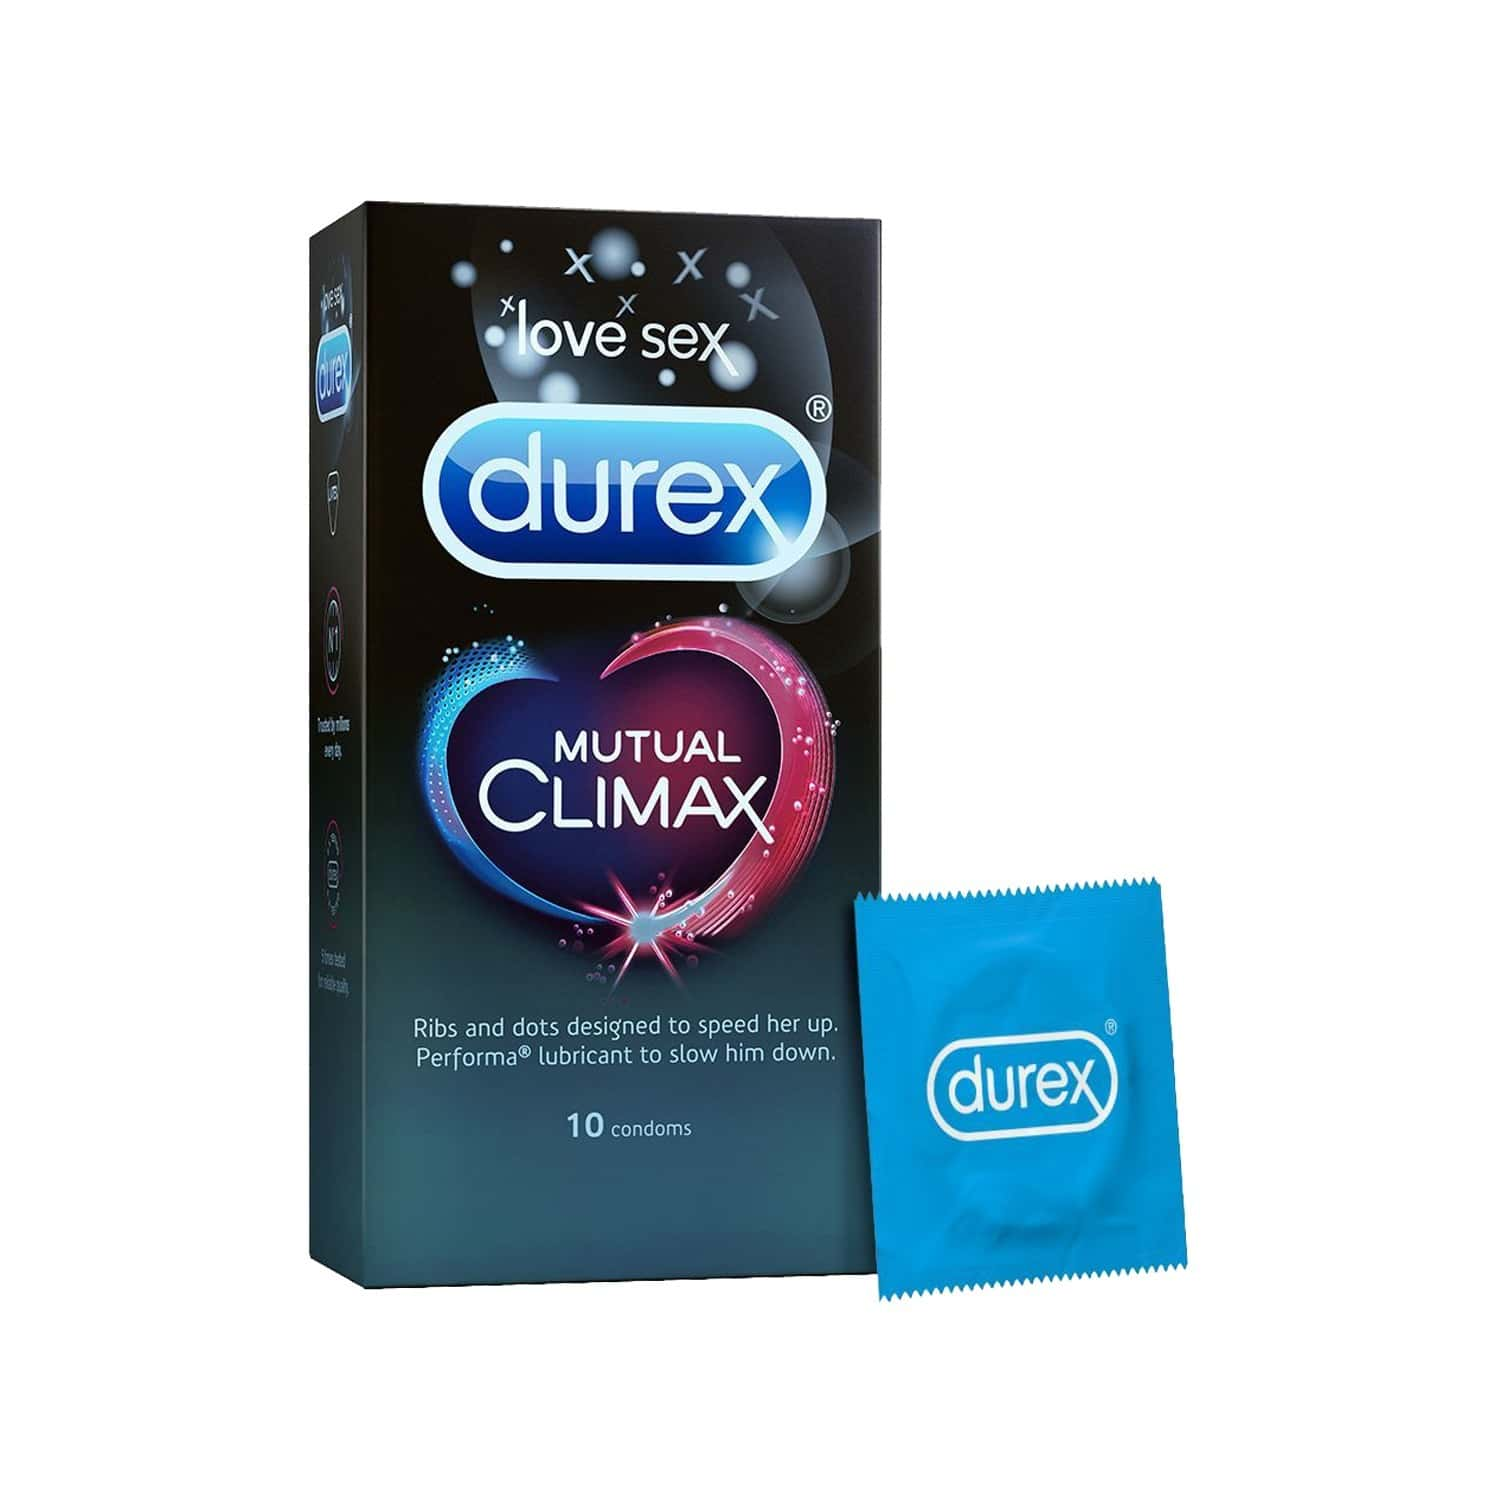 Durex Mutual Climax Packet Of 10 Condoms